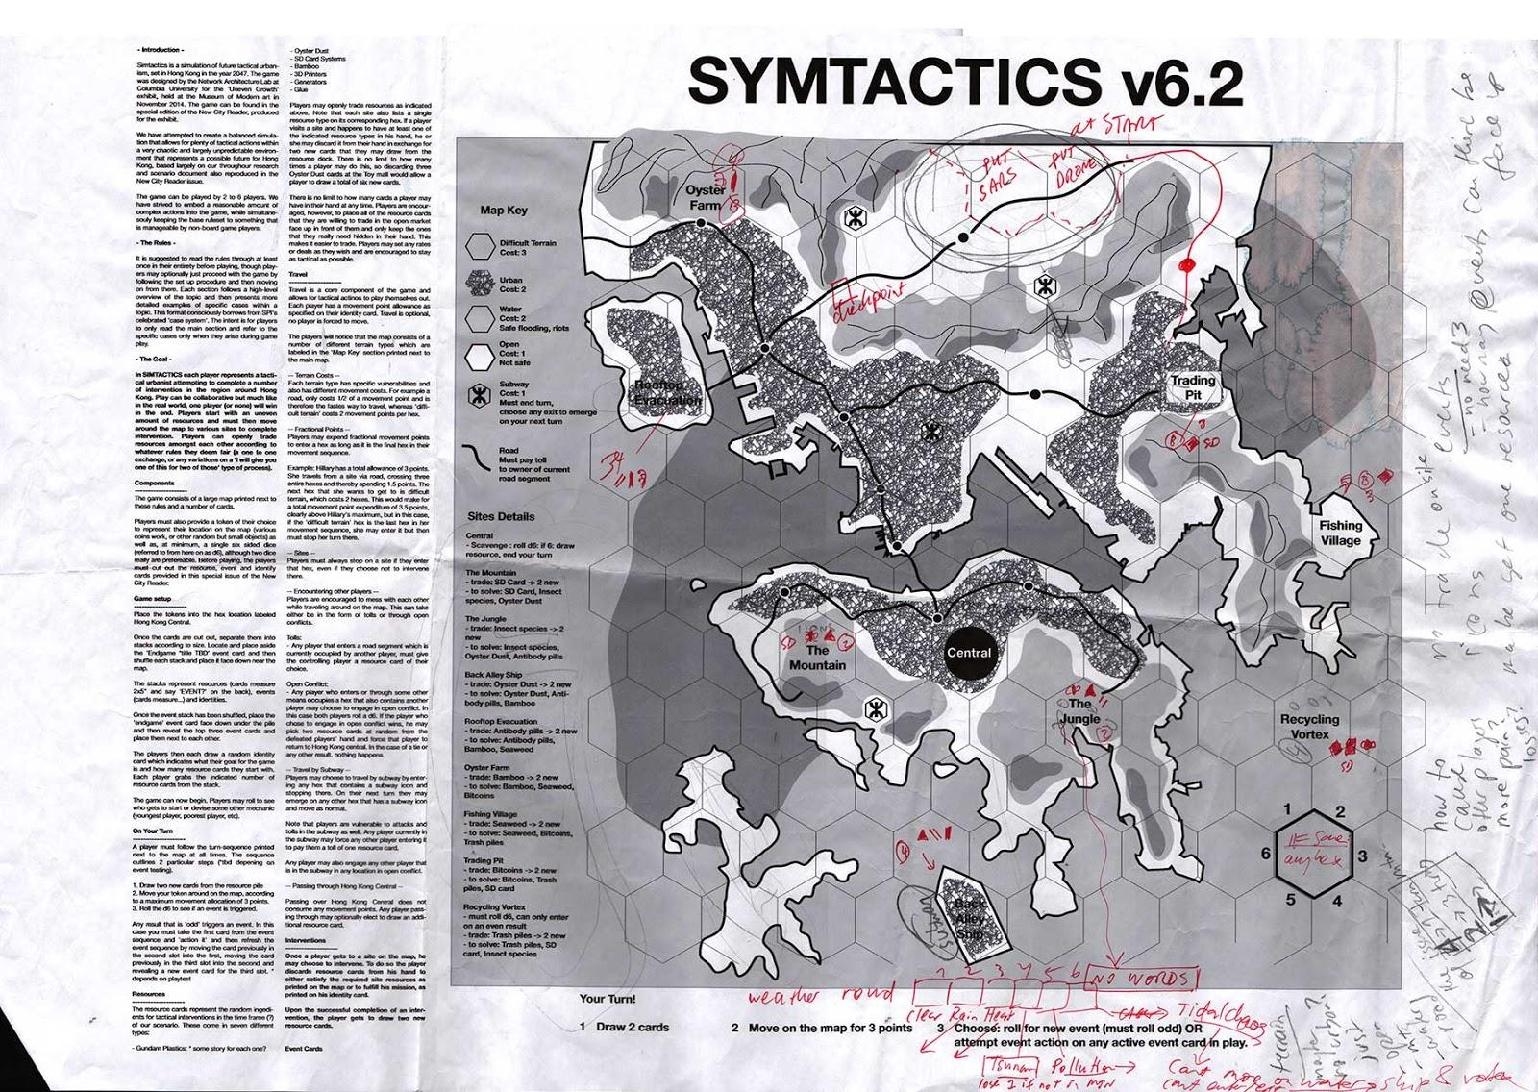 """SYMTACTICS, version 6.2 """"pre-Vienna,"""" photo courtesy of Network Architecture Lab."""